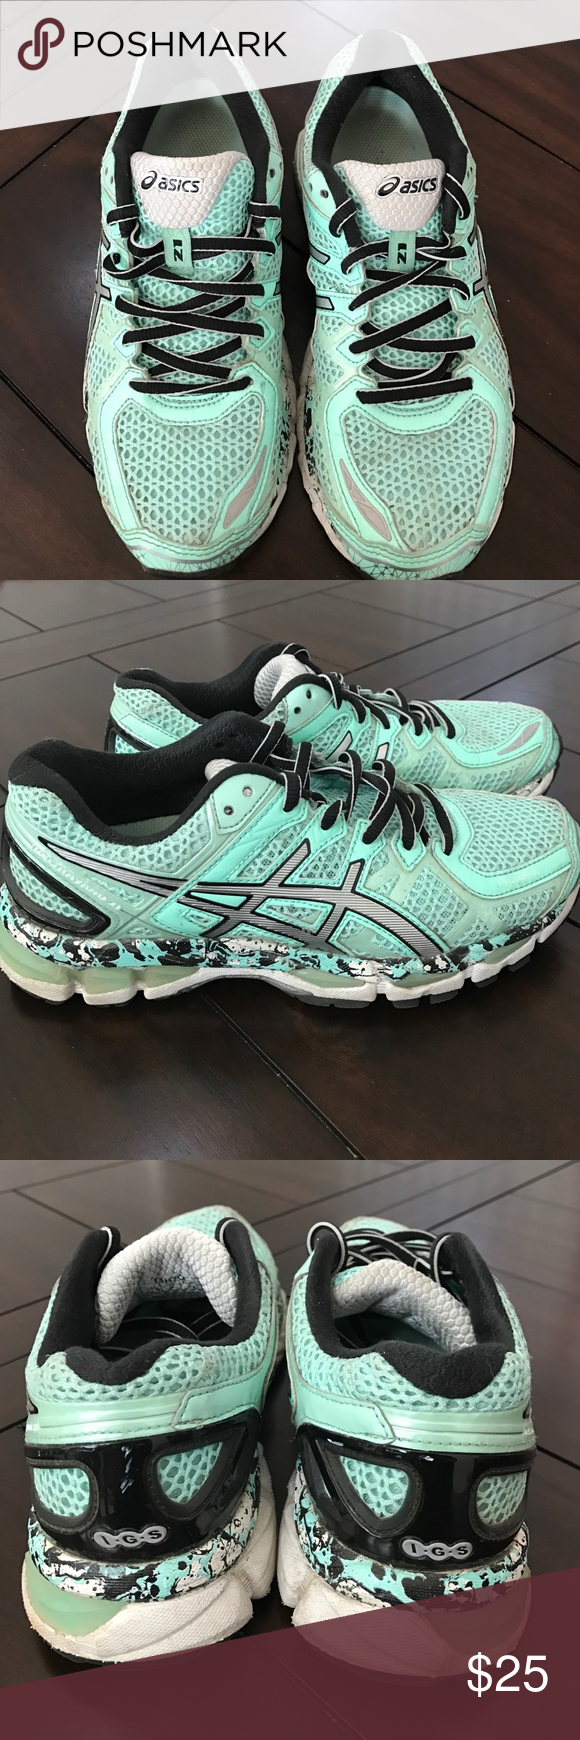 ASICS Gel-Kayano Z1👍🏻💯 ASICS Gel-Kayano Z1👍🏻💯 Asics Shoes Athletic  Shoes 06aa95075